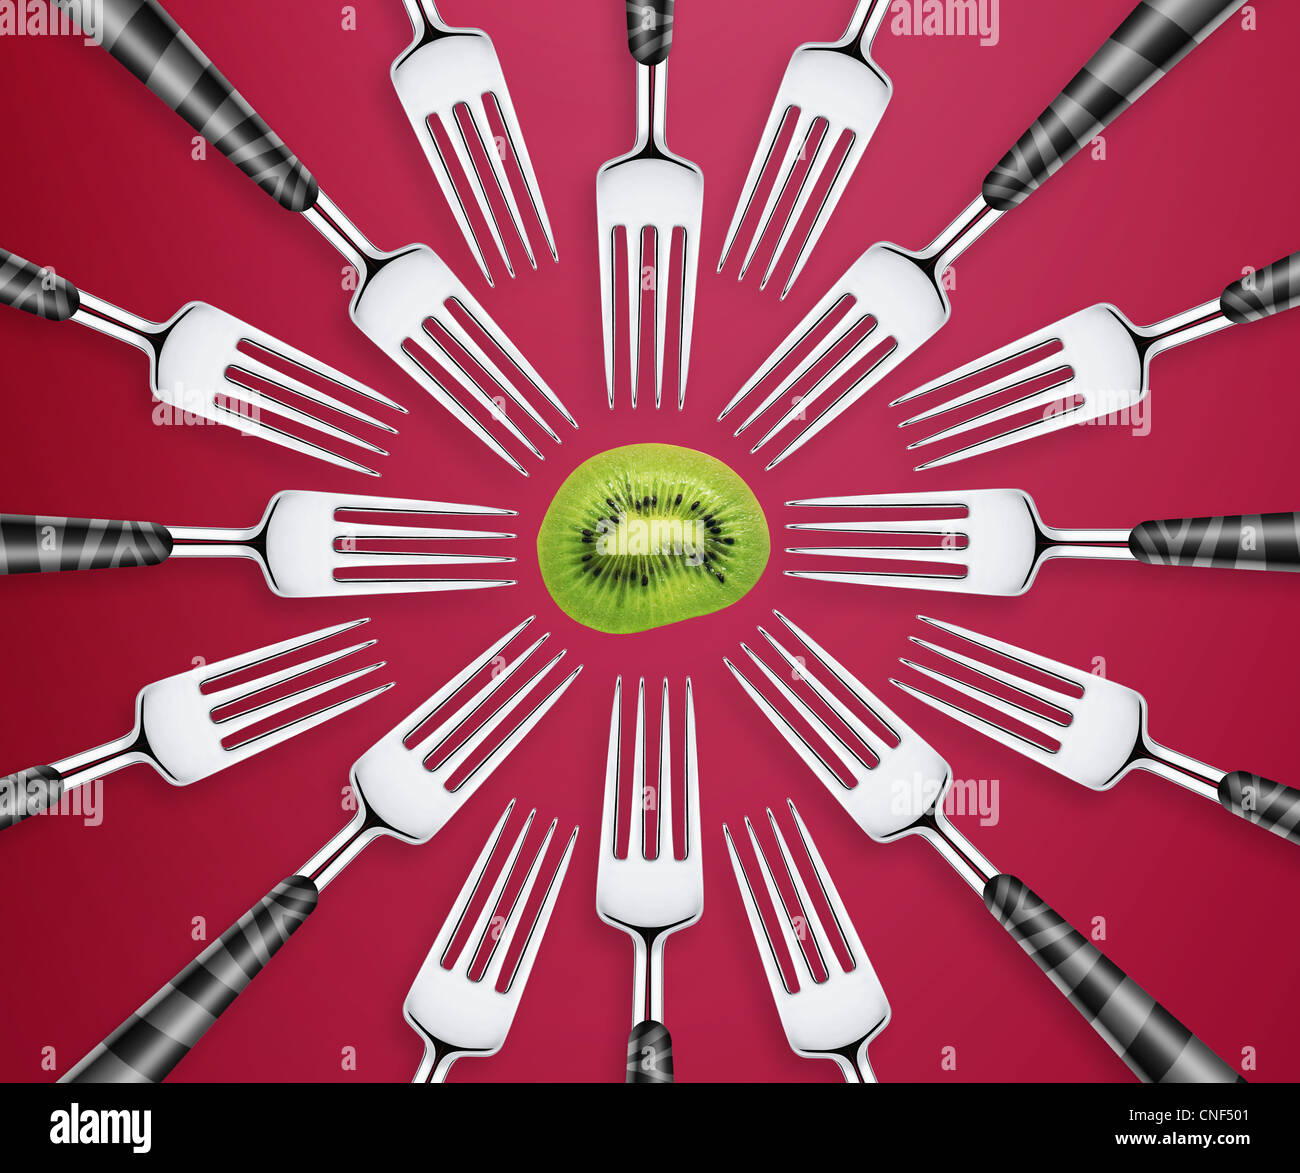 Empty copy space of Set of forks in competition on red background. - Stock Image